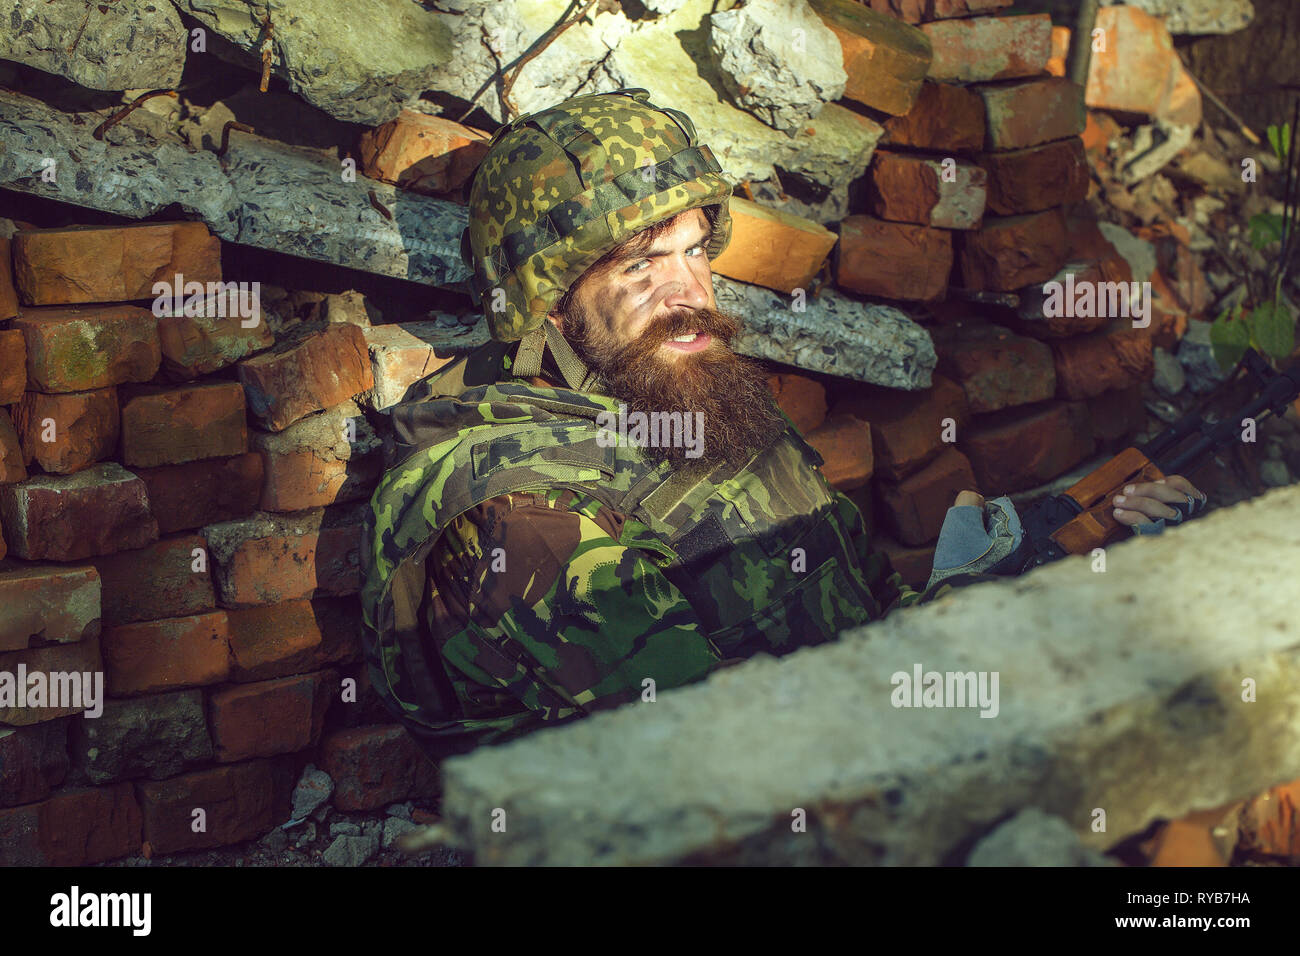 Soldier with angry face - Stock Image